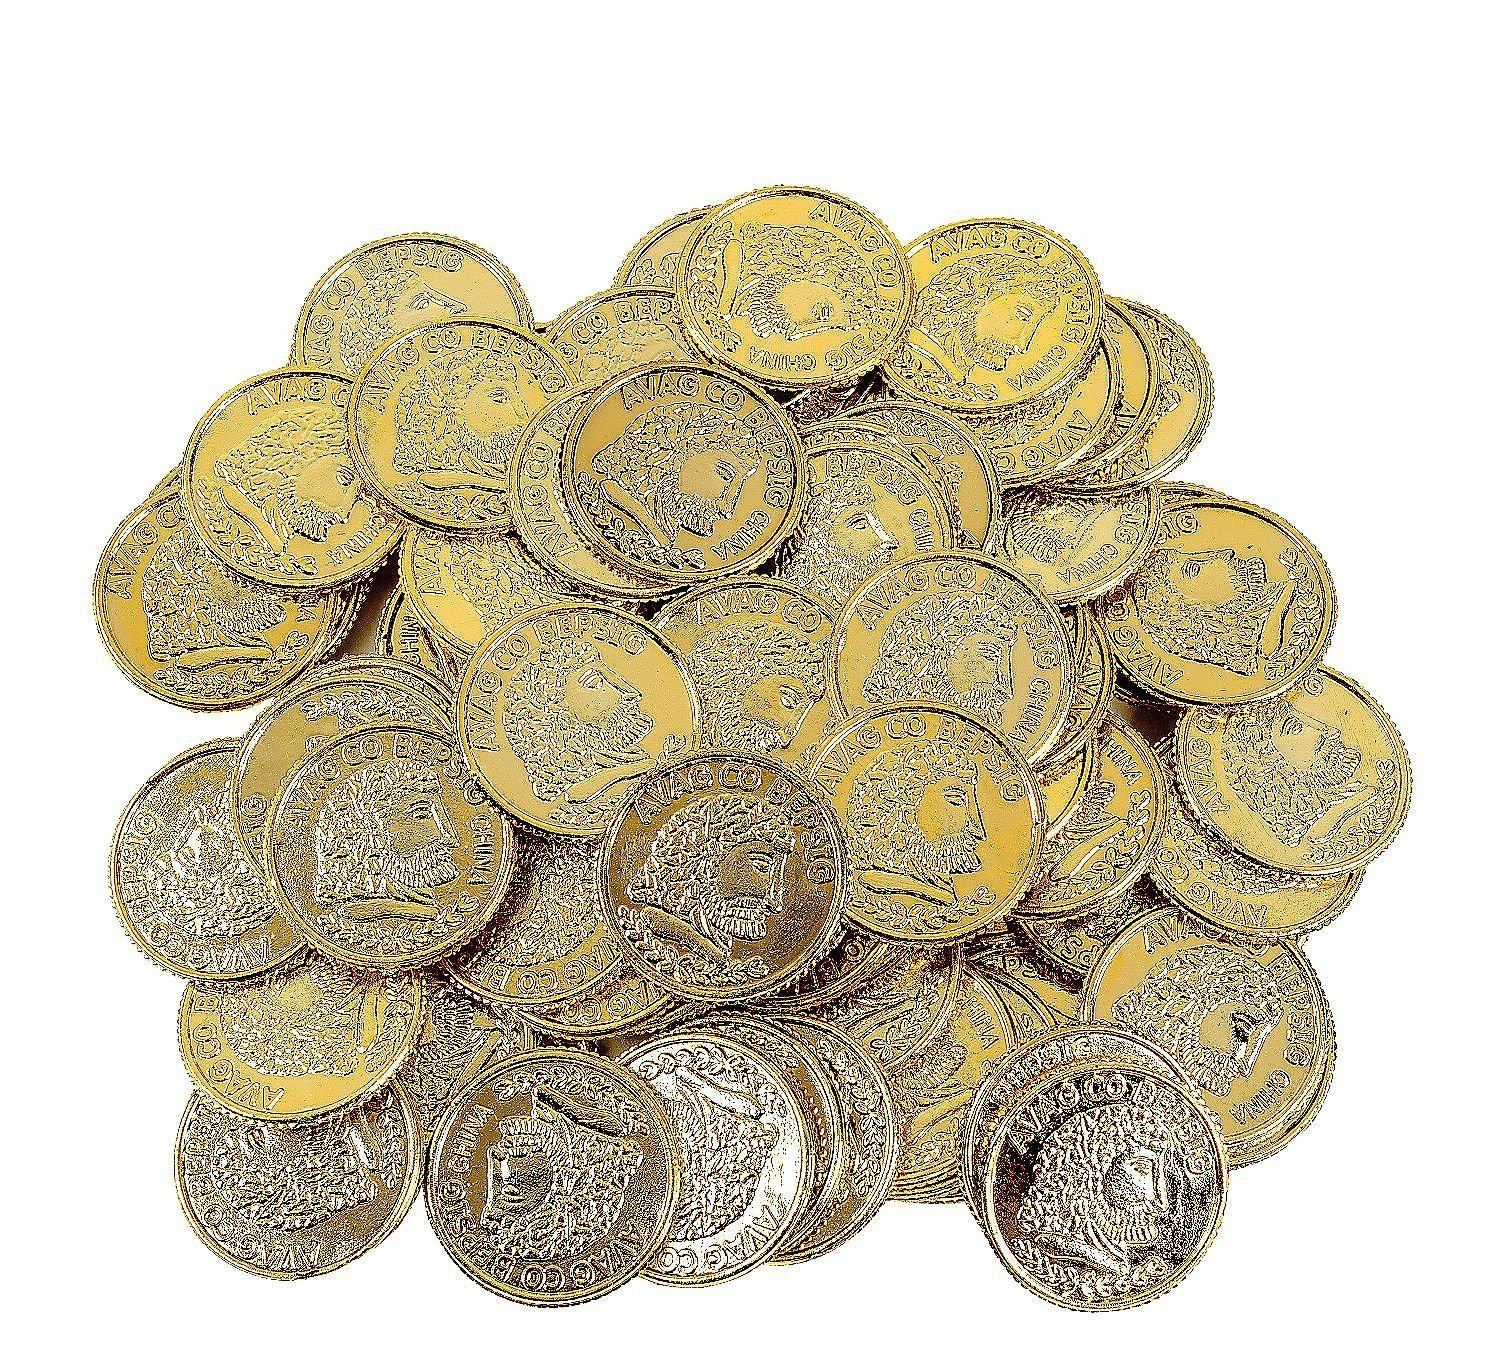 Fun Express Pirate Party Favor Gold Play Coins, 144Pieces, Plastic By WMU